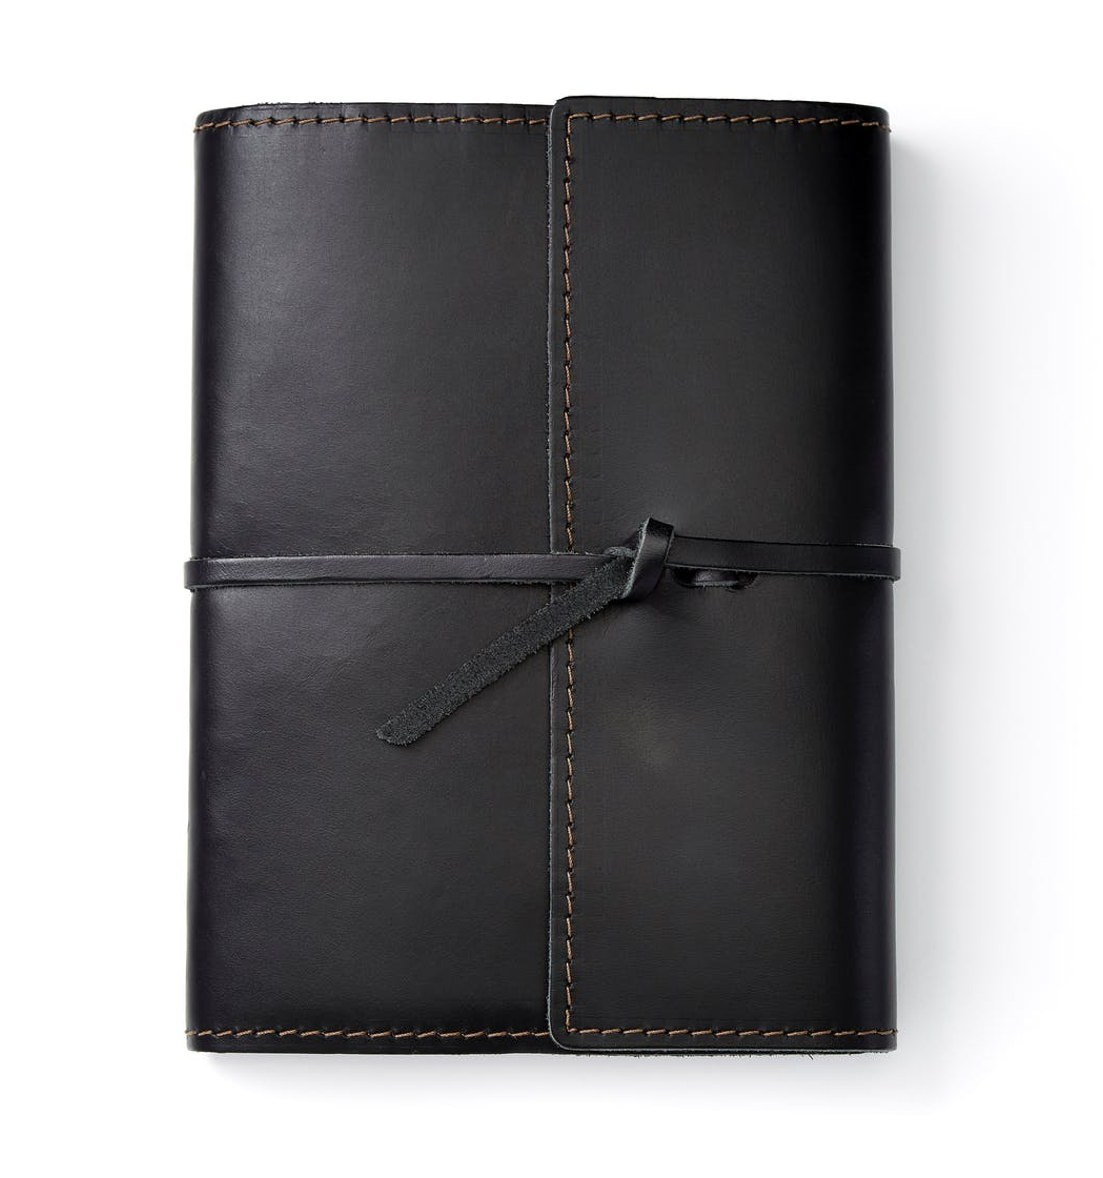 Rustico Refillable Leather Notebook